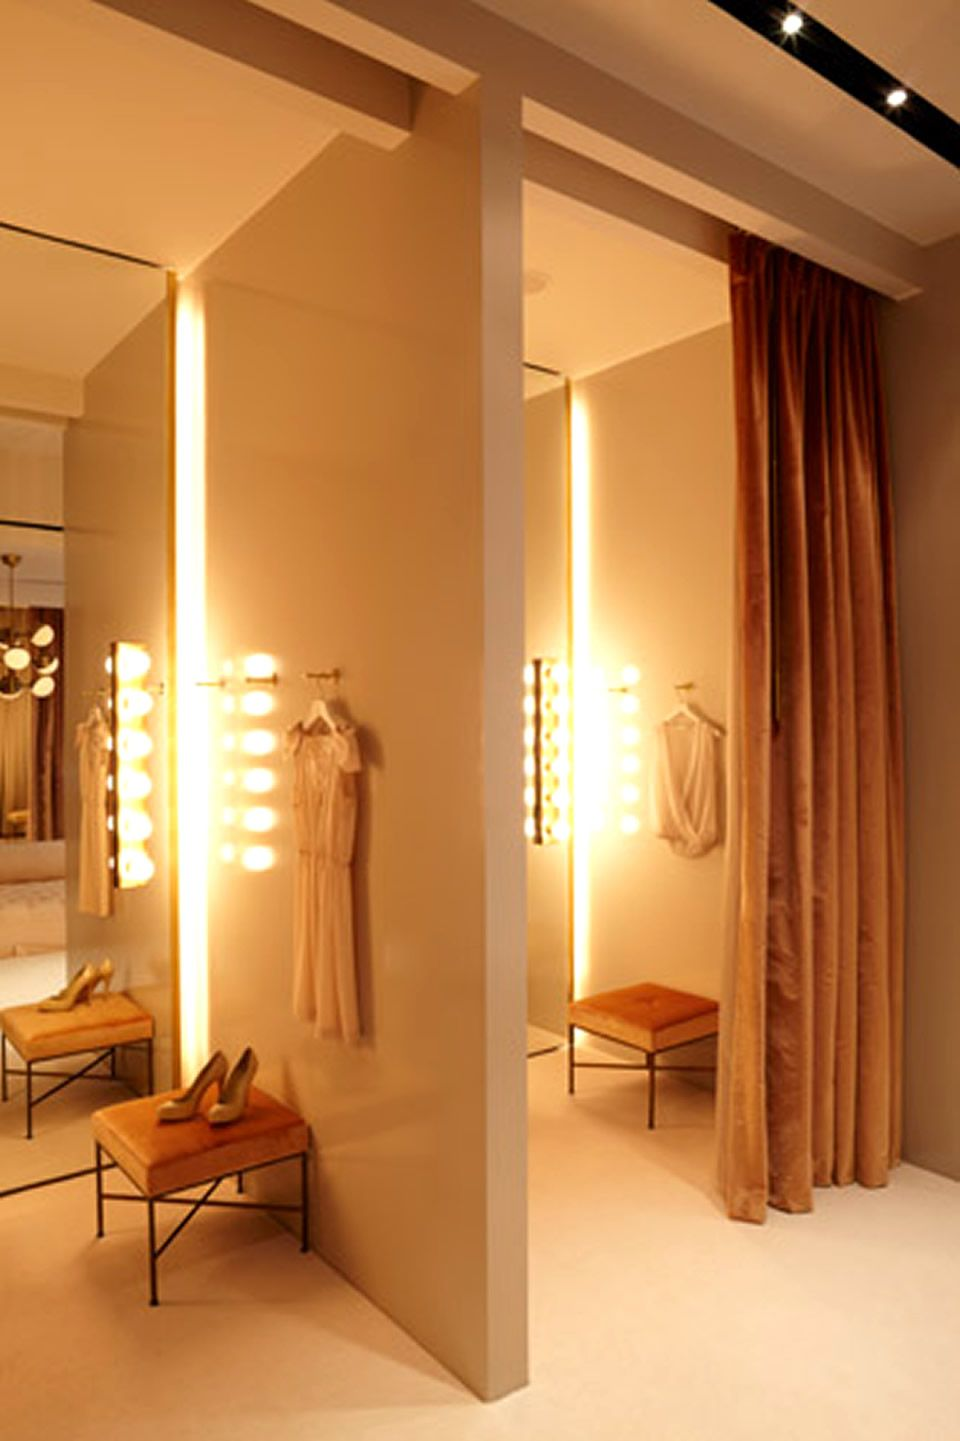 Makeup lights next to the mirror? Dressing Room of Fashion Retail ...